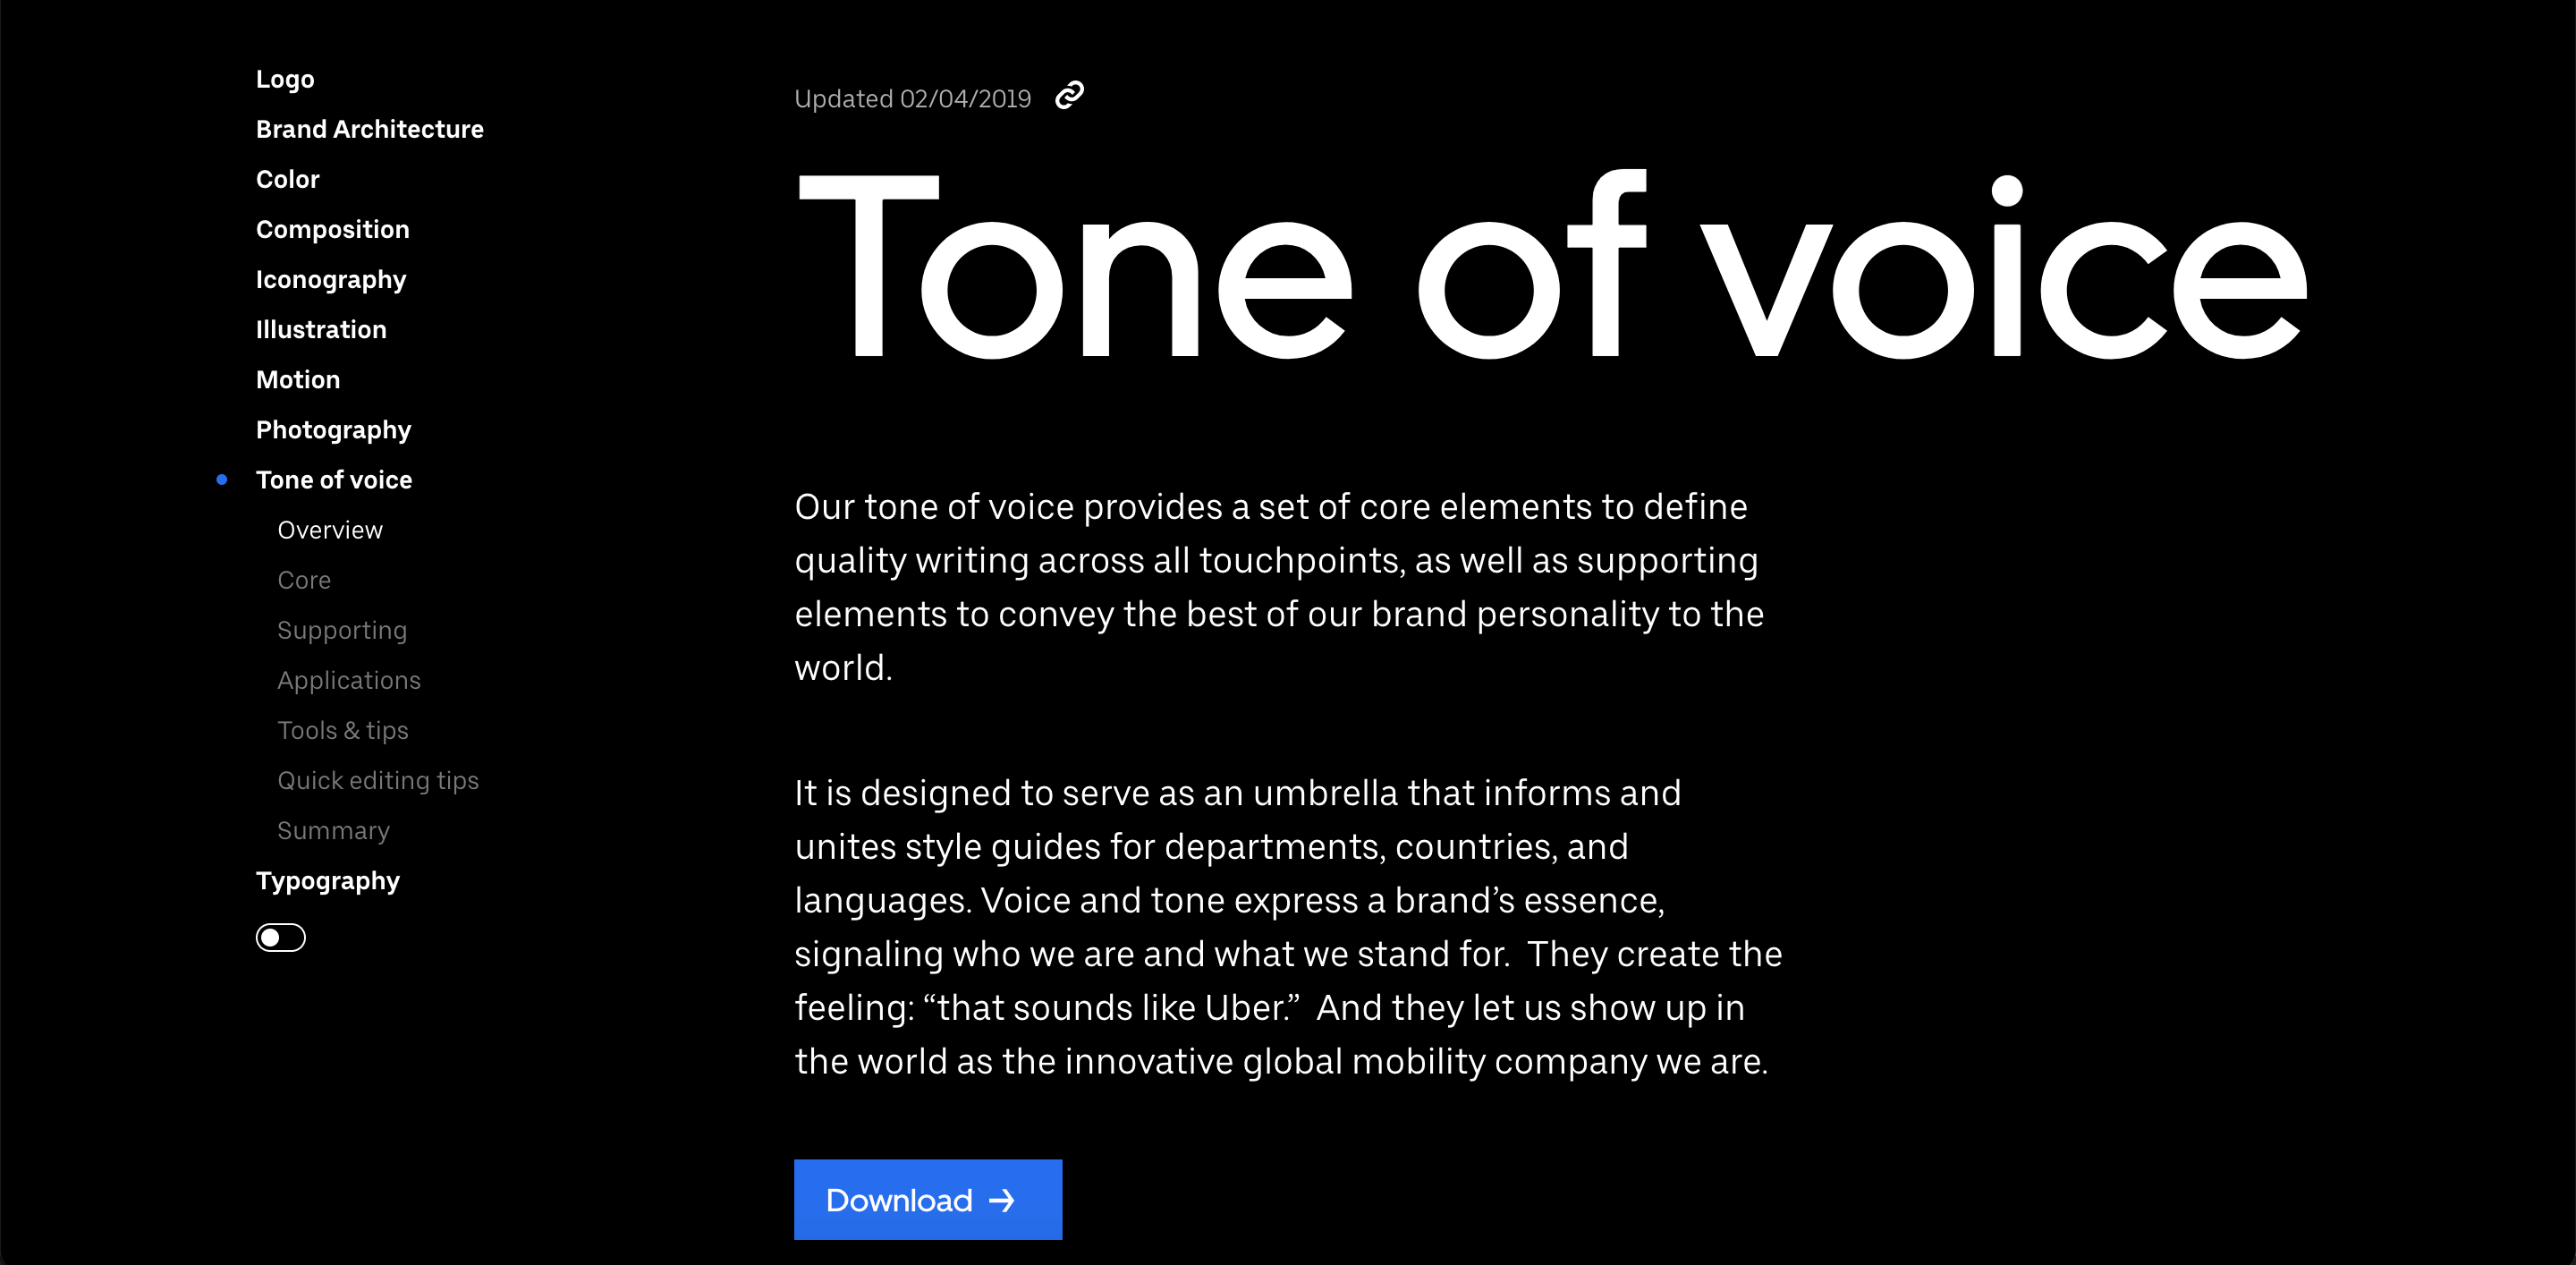 10 of the best content styleguides in tech - UBER